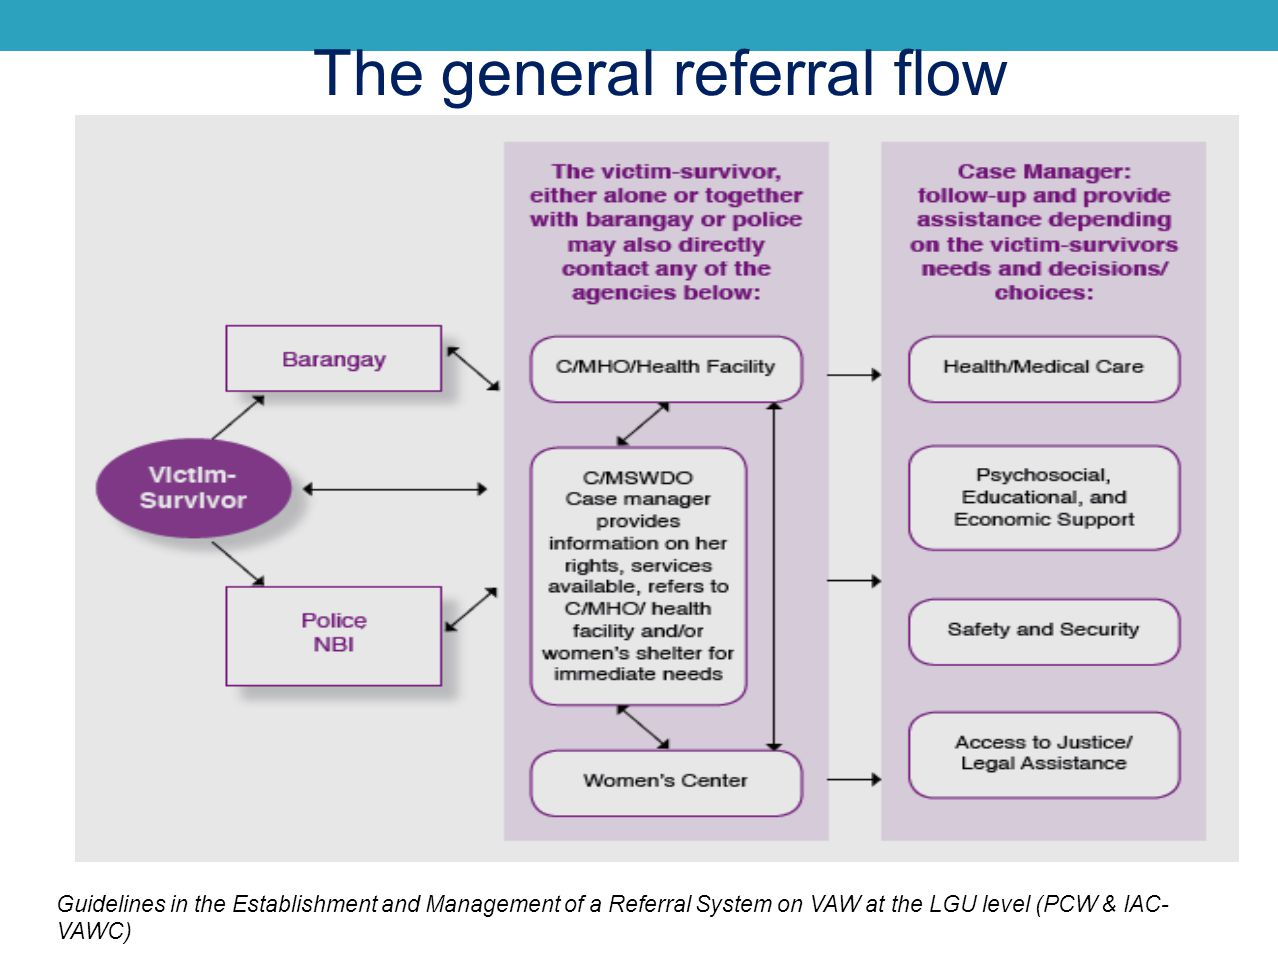 The general referral flow Guidelines in the Establishment and Management of a Referral System on VAW at the LGU level (PCW & IAC- VAWC)